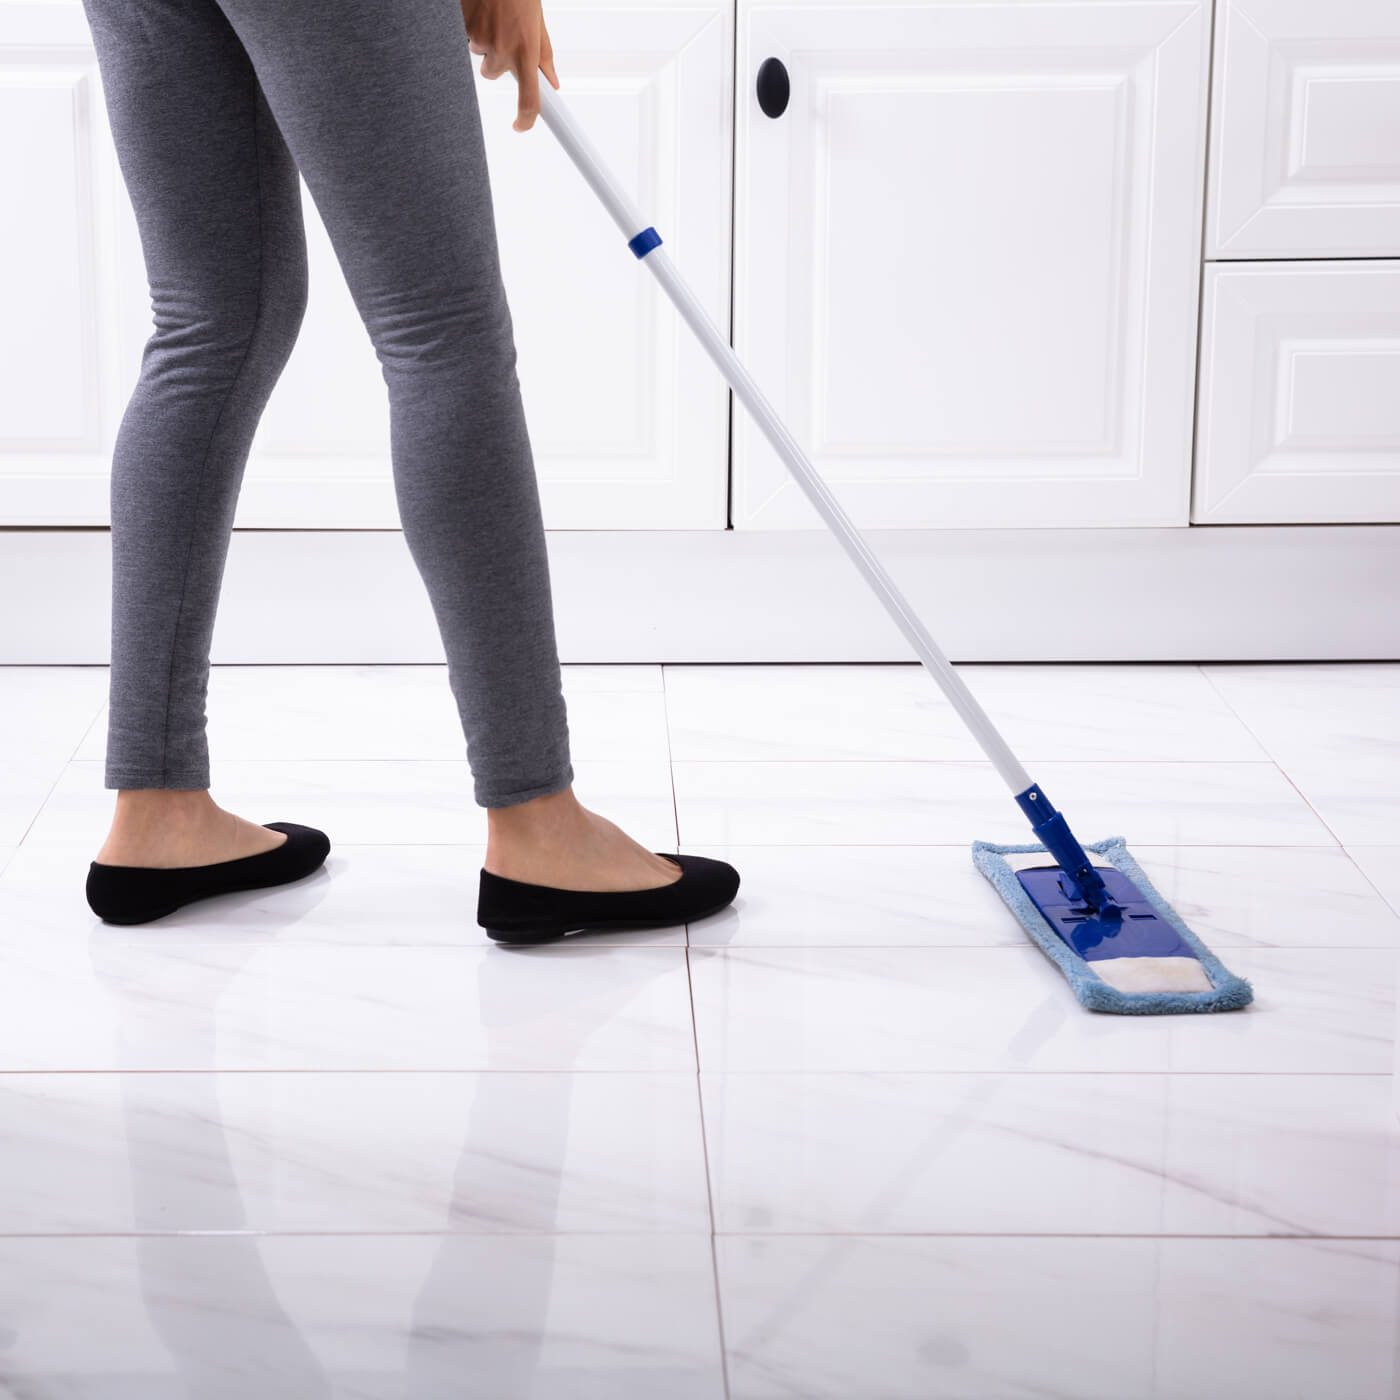 Cleaning tile by sweeping | Jack's Tile And Carpet